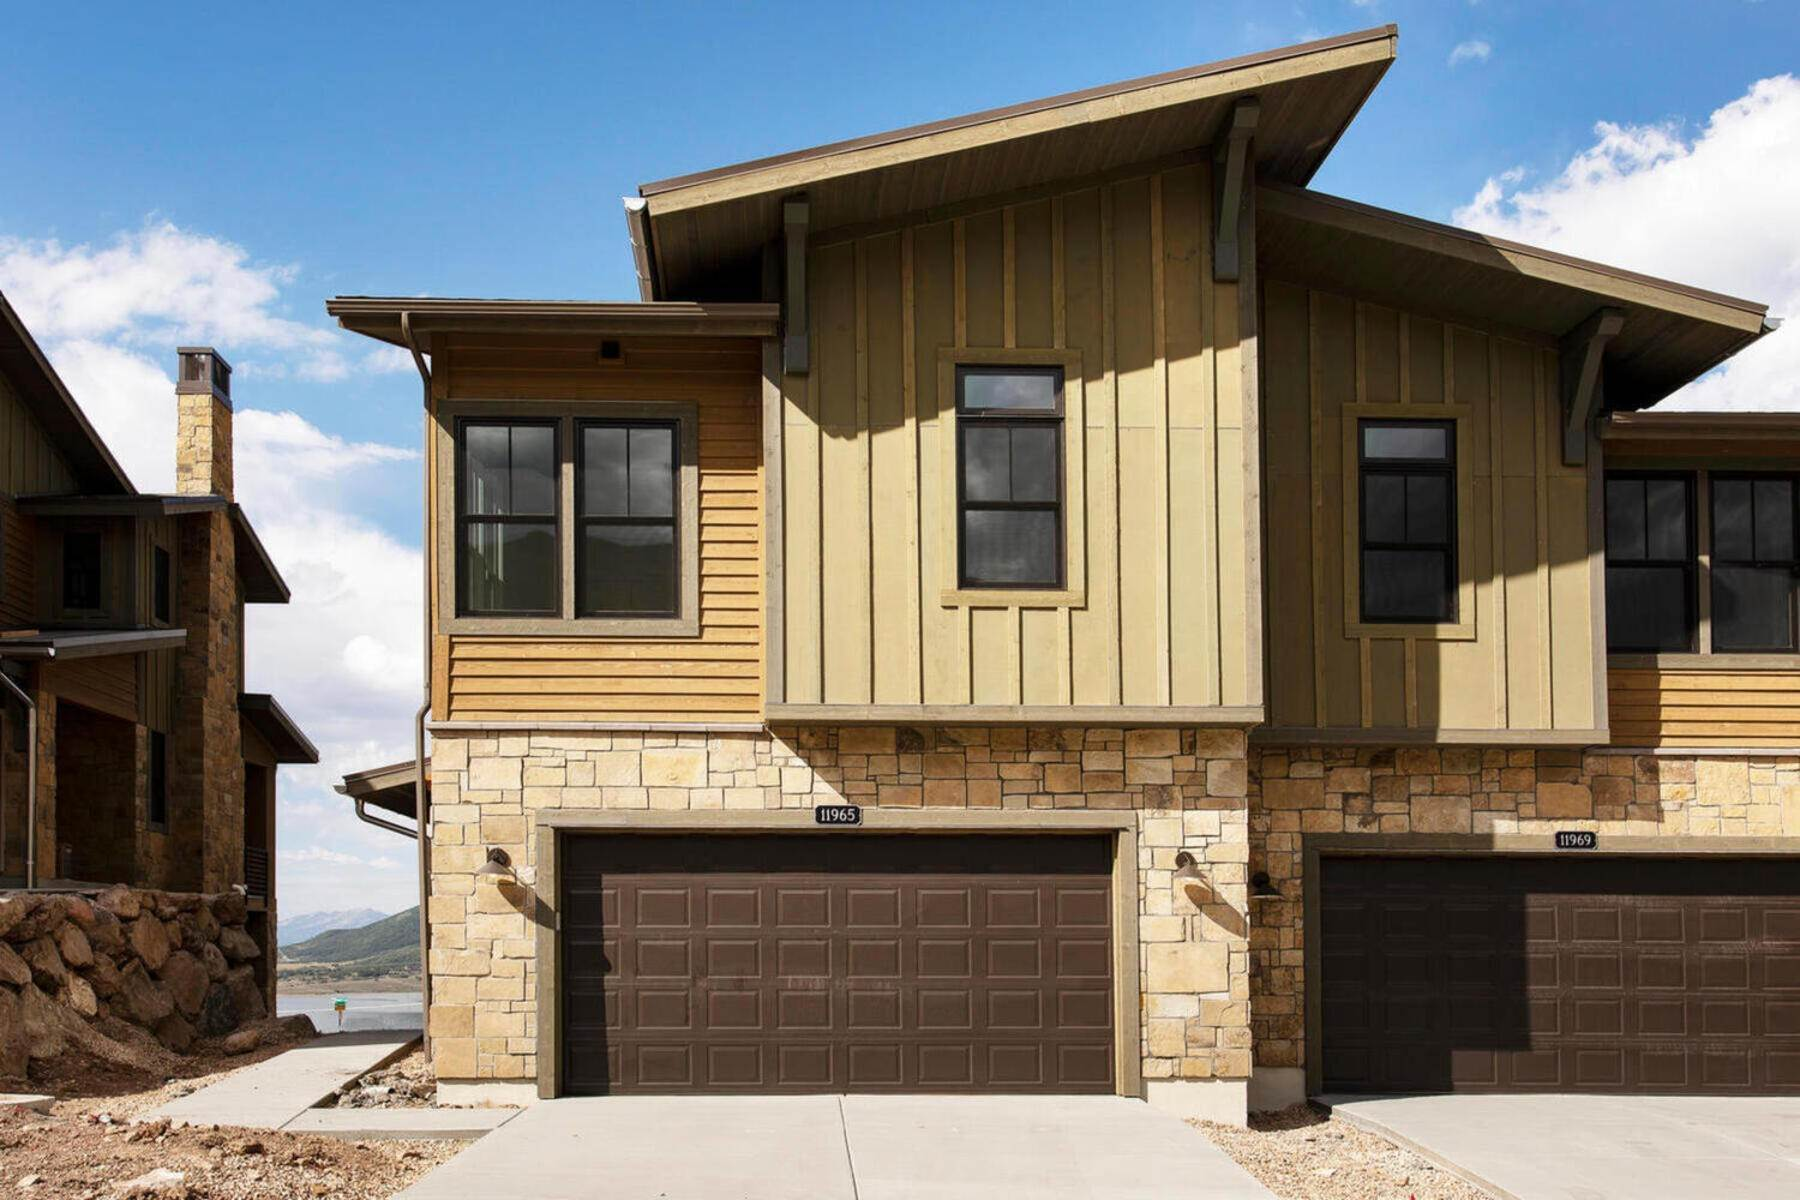 townhouses for Sale at New Lakefront Community with Views of Deer Valley Resort & Jordanelle Reservoir Lot #6 (Phase II) at Deer Waters Hideout Canyon, Utah 84036 United States